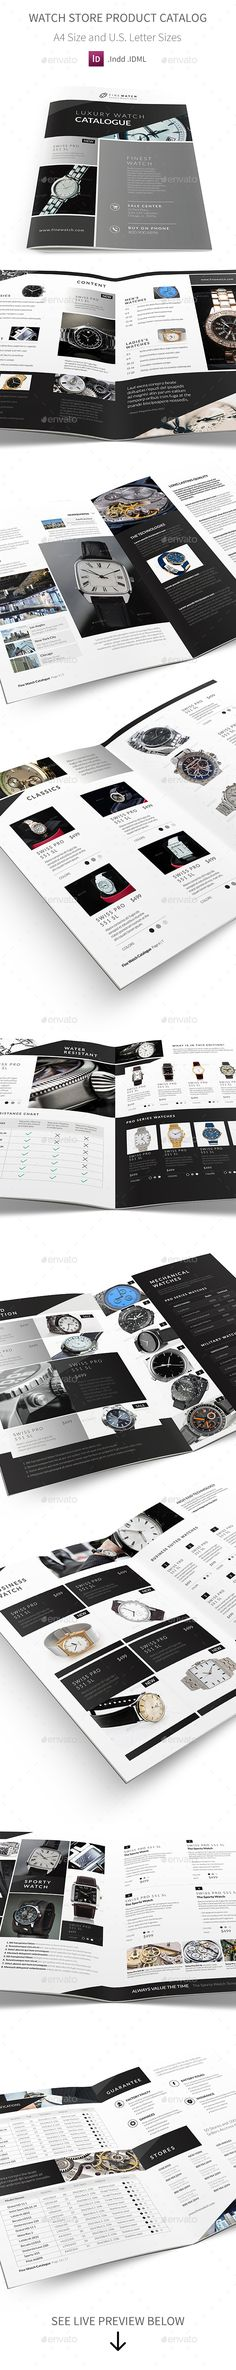 Watch Store Product Catalog — InDesign INDD #professional #catalogue • Download ➝ https://graphicriver.net/item/watch-store-product-catalog/19770409?ref=pxcr